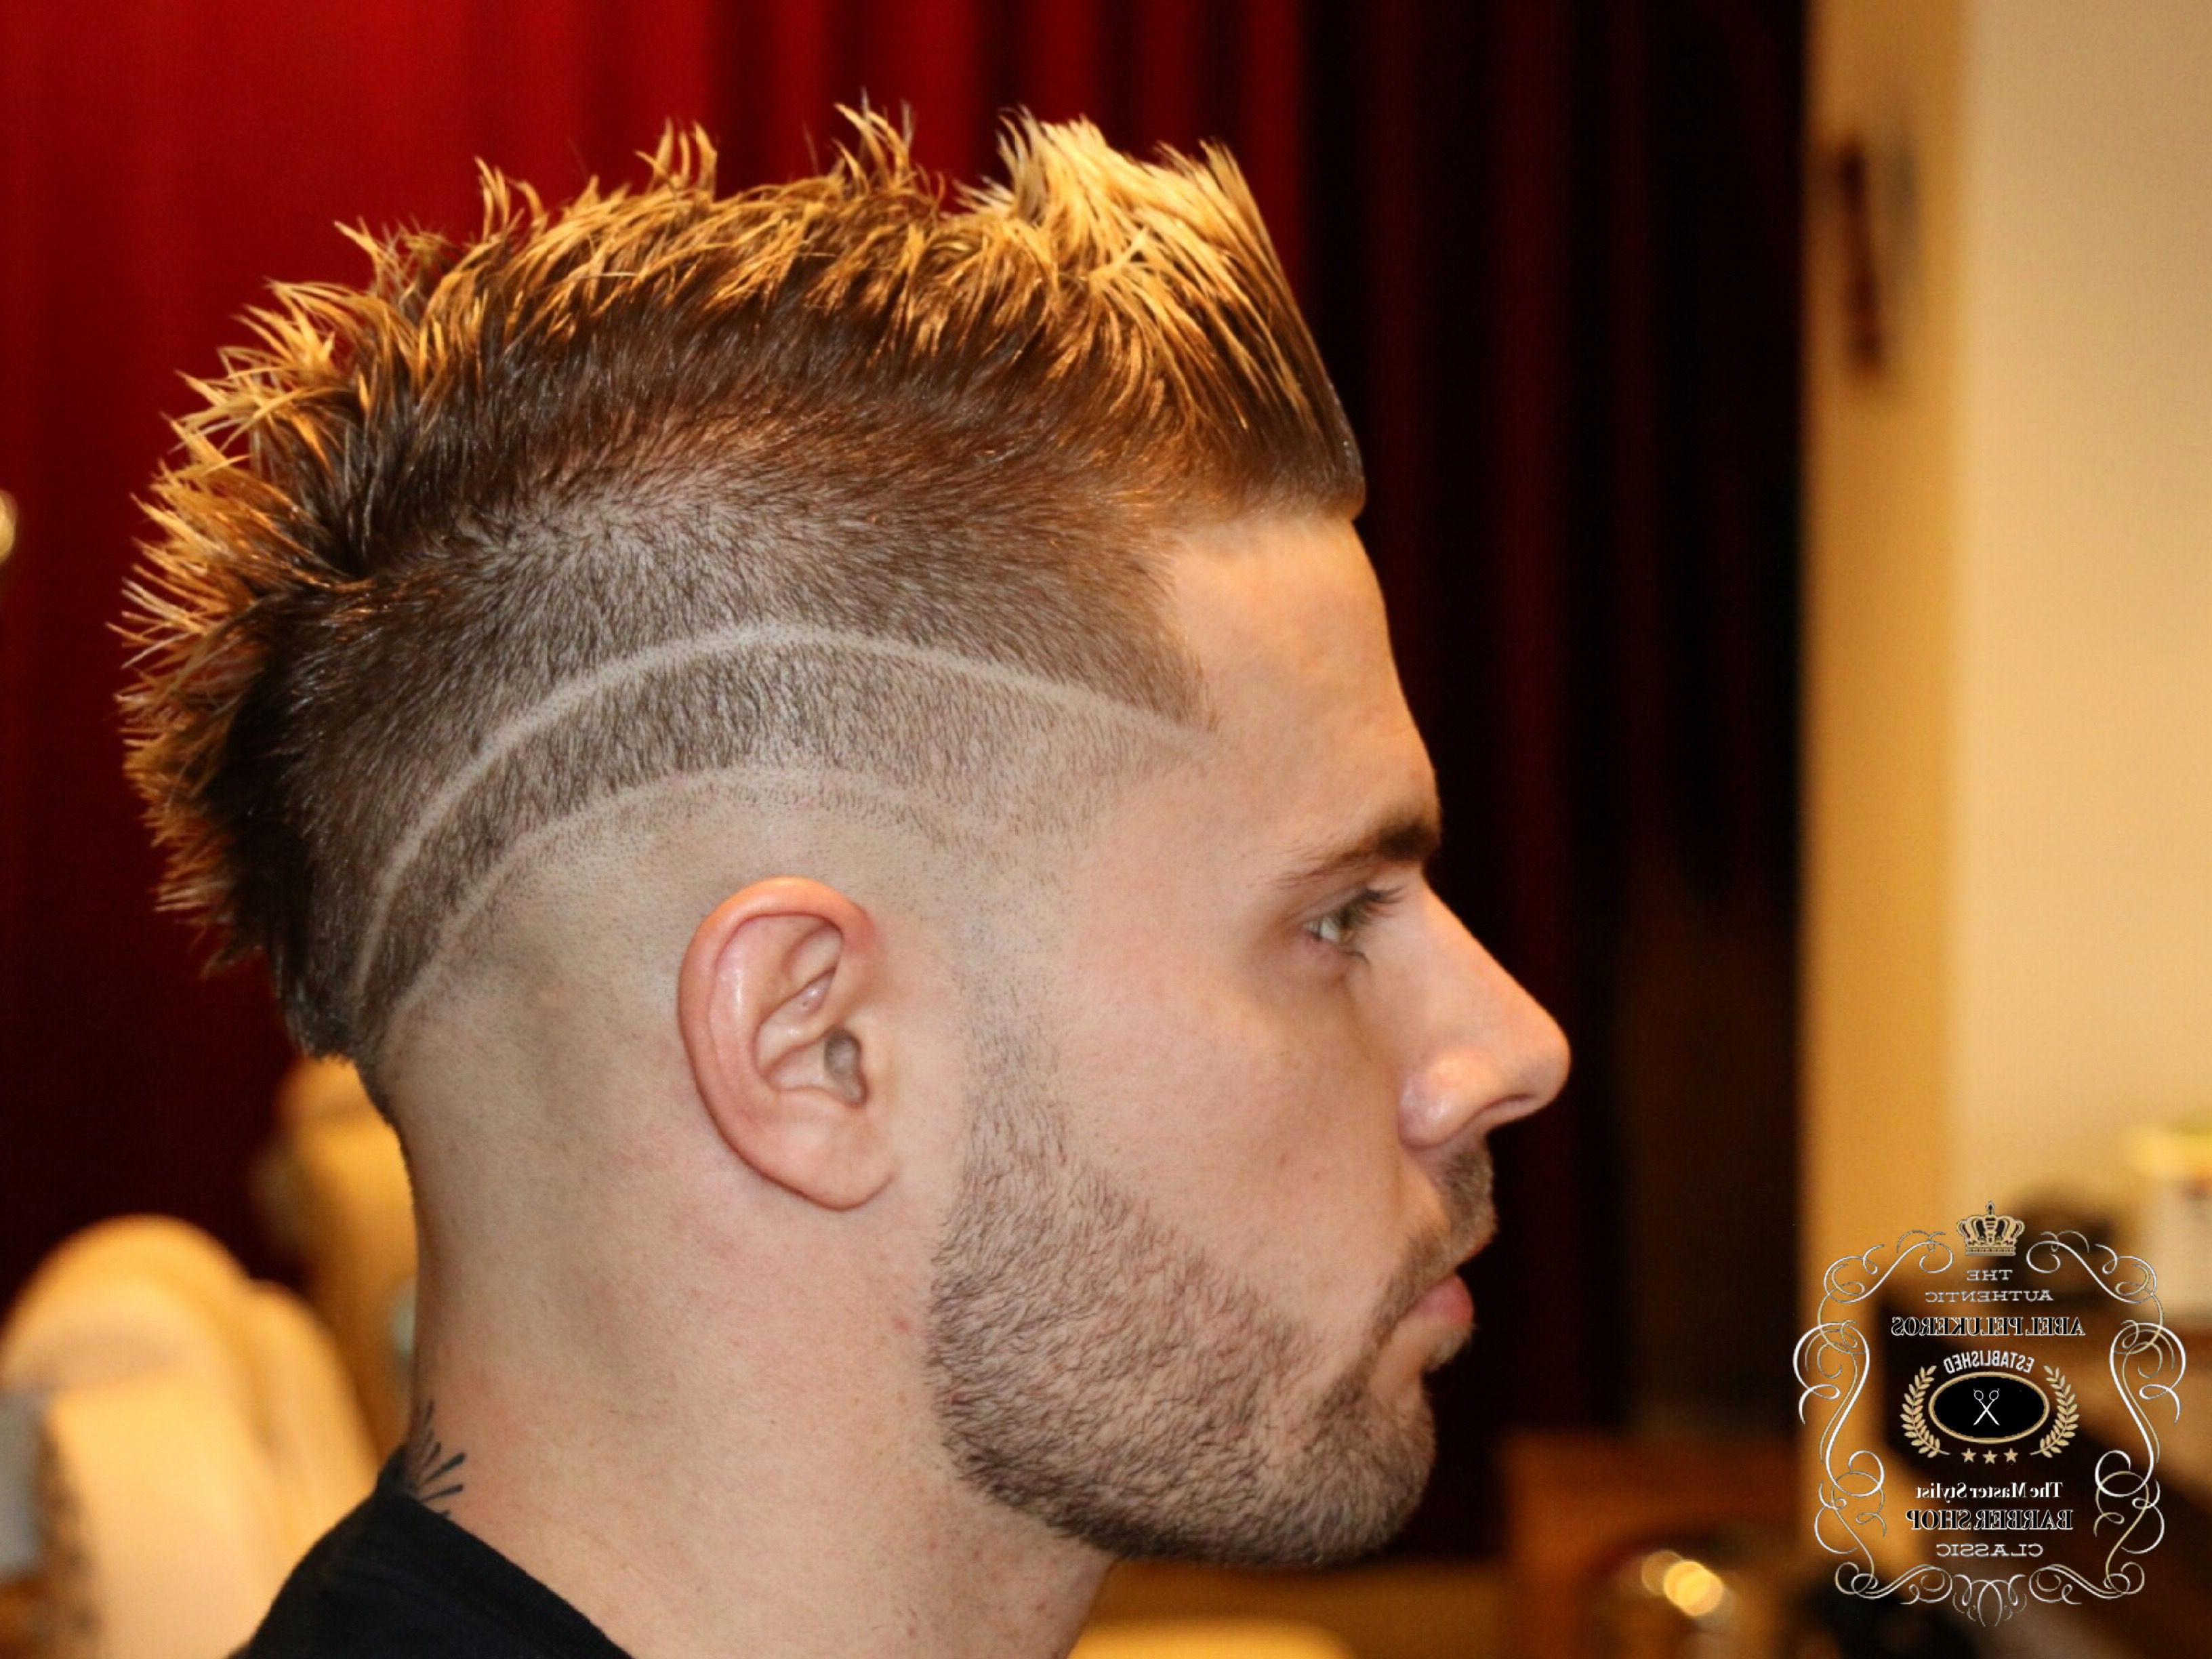 Hairstyles : Mohawk Hairstyle For Guys Awesome Hairstyles With Recent Fancy Mohawk Haircuts (View 7 of 20)